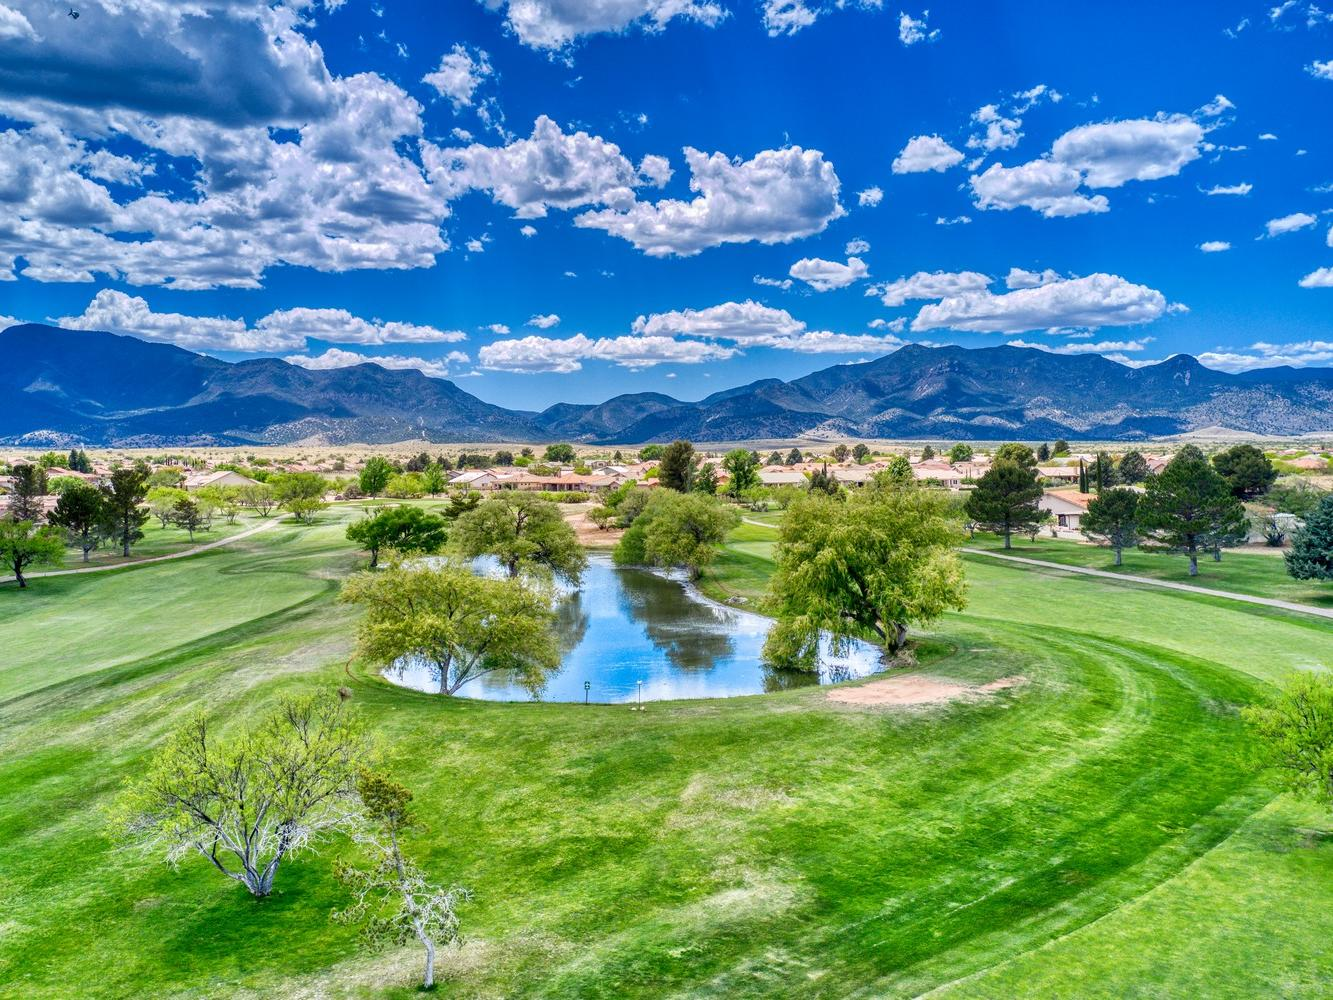 Vast Pueblo del Sol golf course.